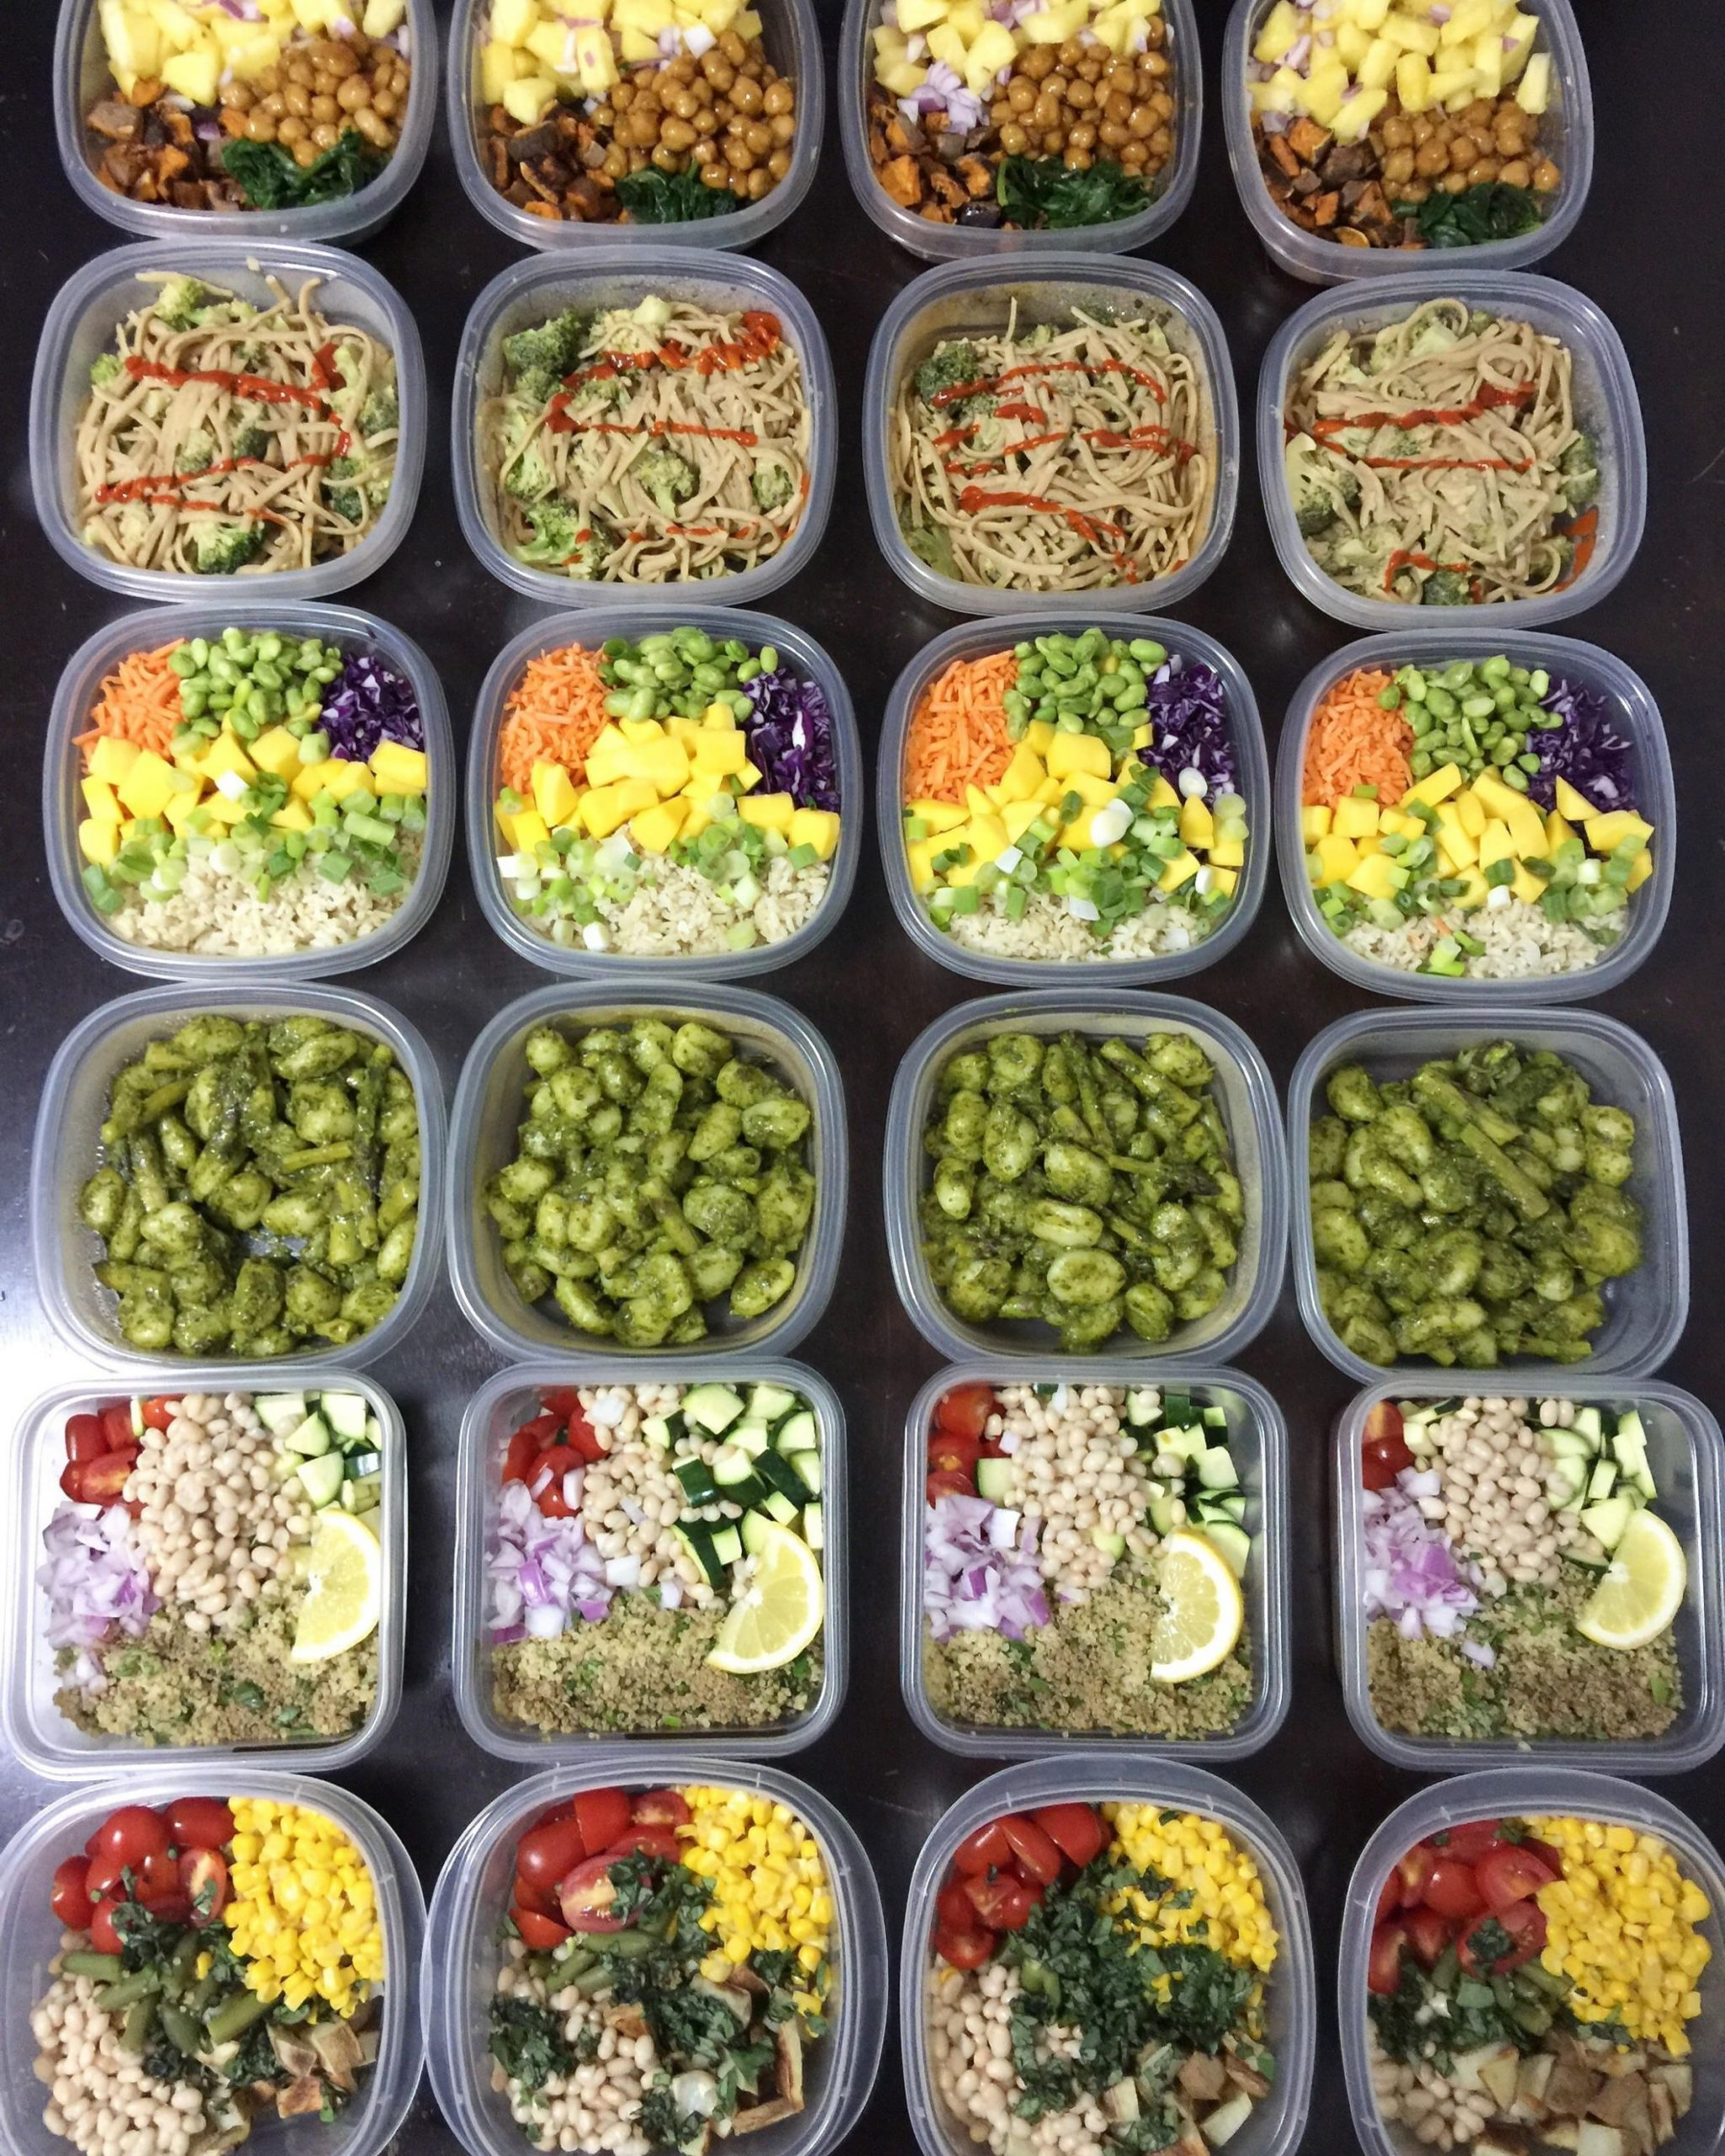 Vegan meal prep for $9 : MealPrepSunday - Recipes Vegan Reddit